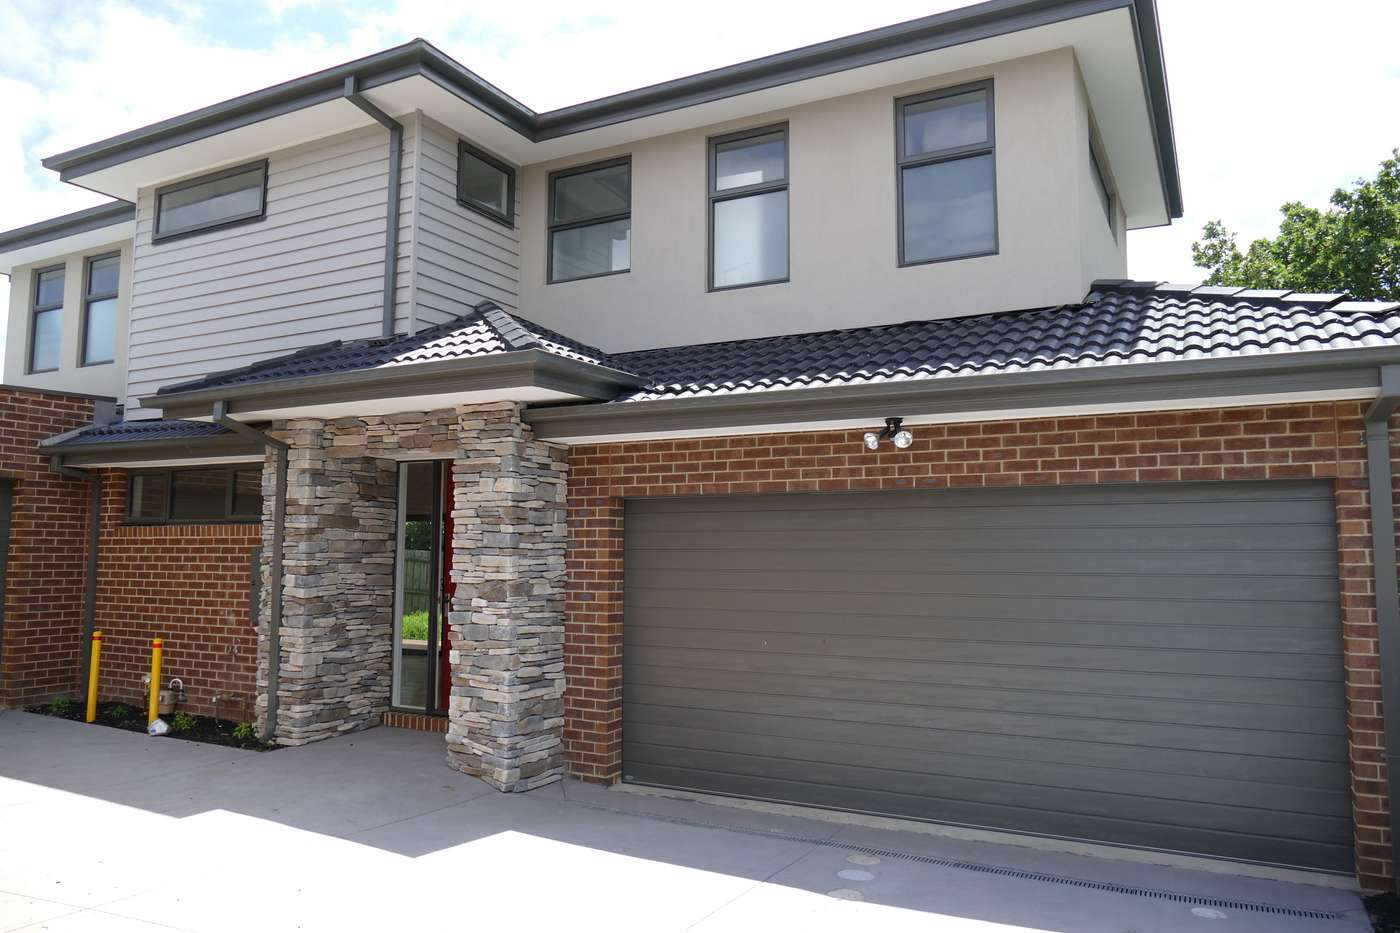 Main view of Homely townhouse listing, 3/13 Clovis Street, Oakleigh East, VIC 3166